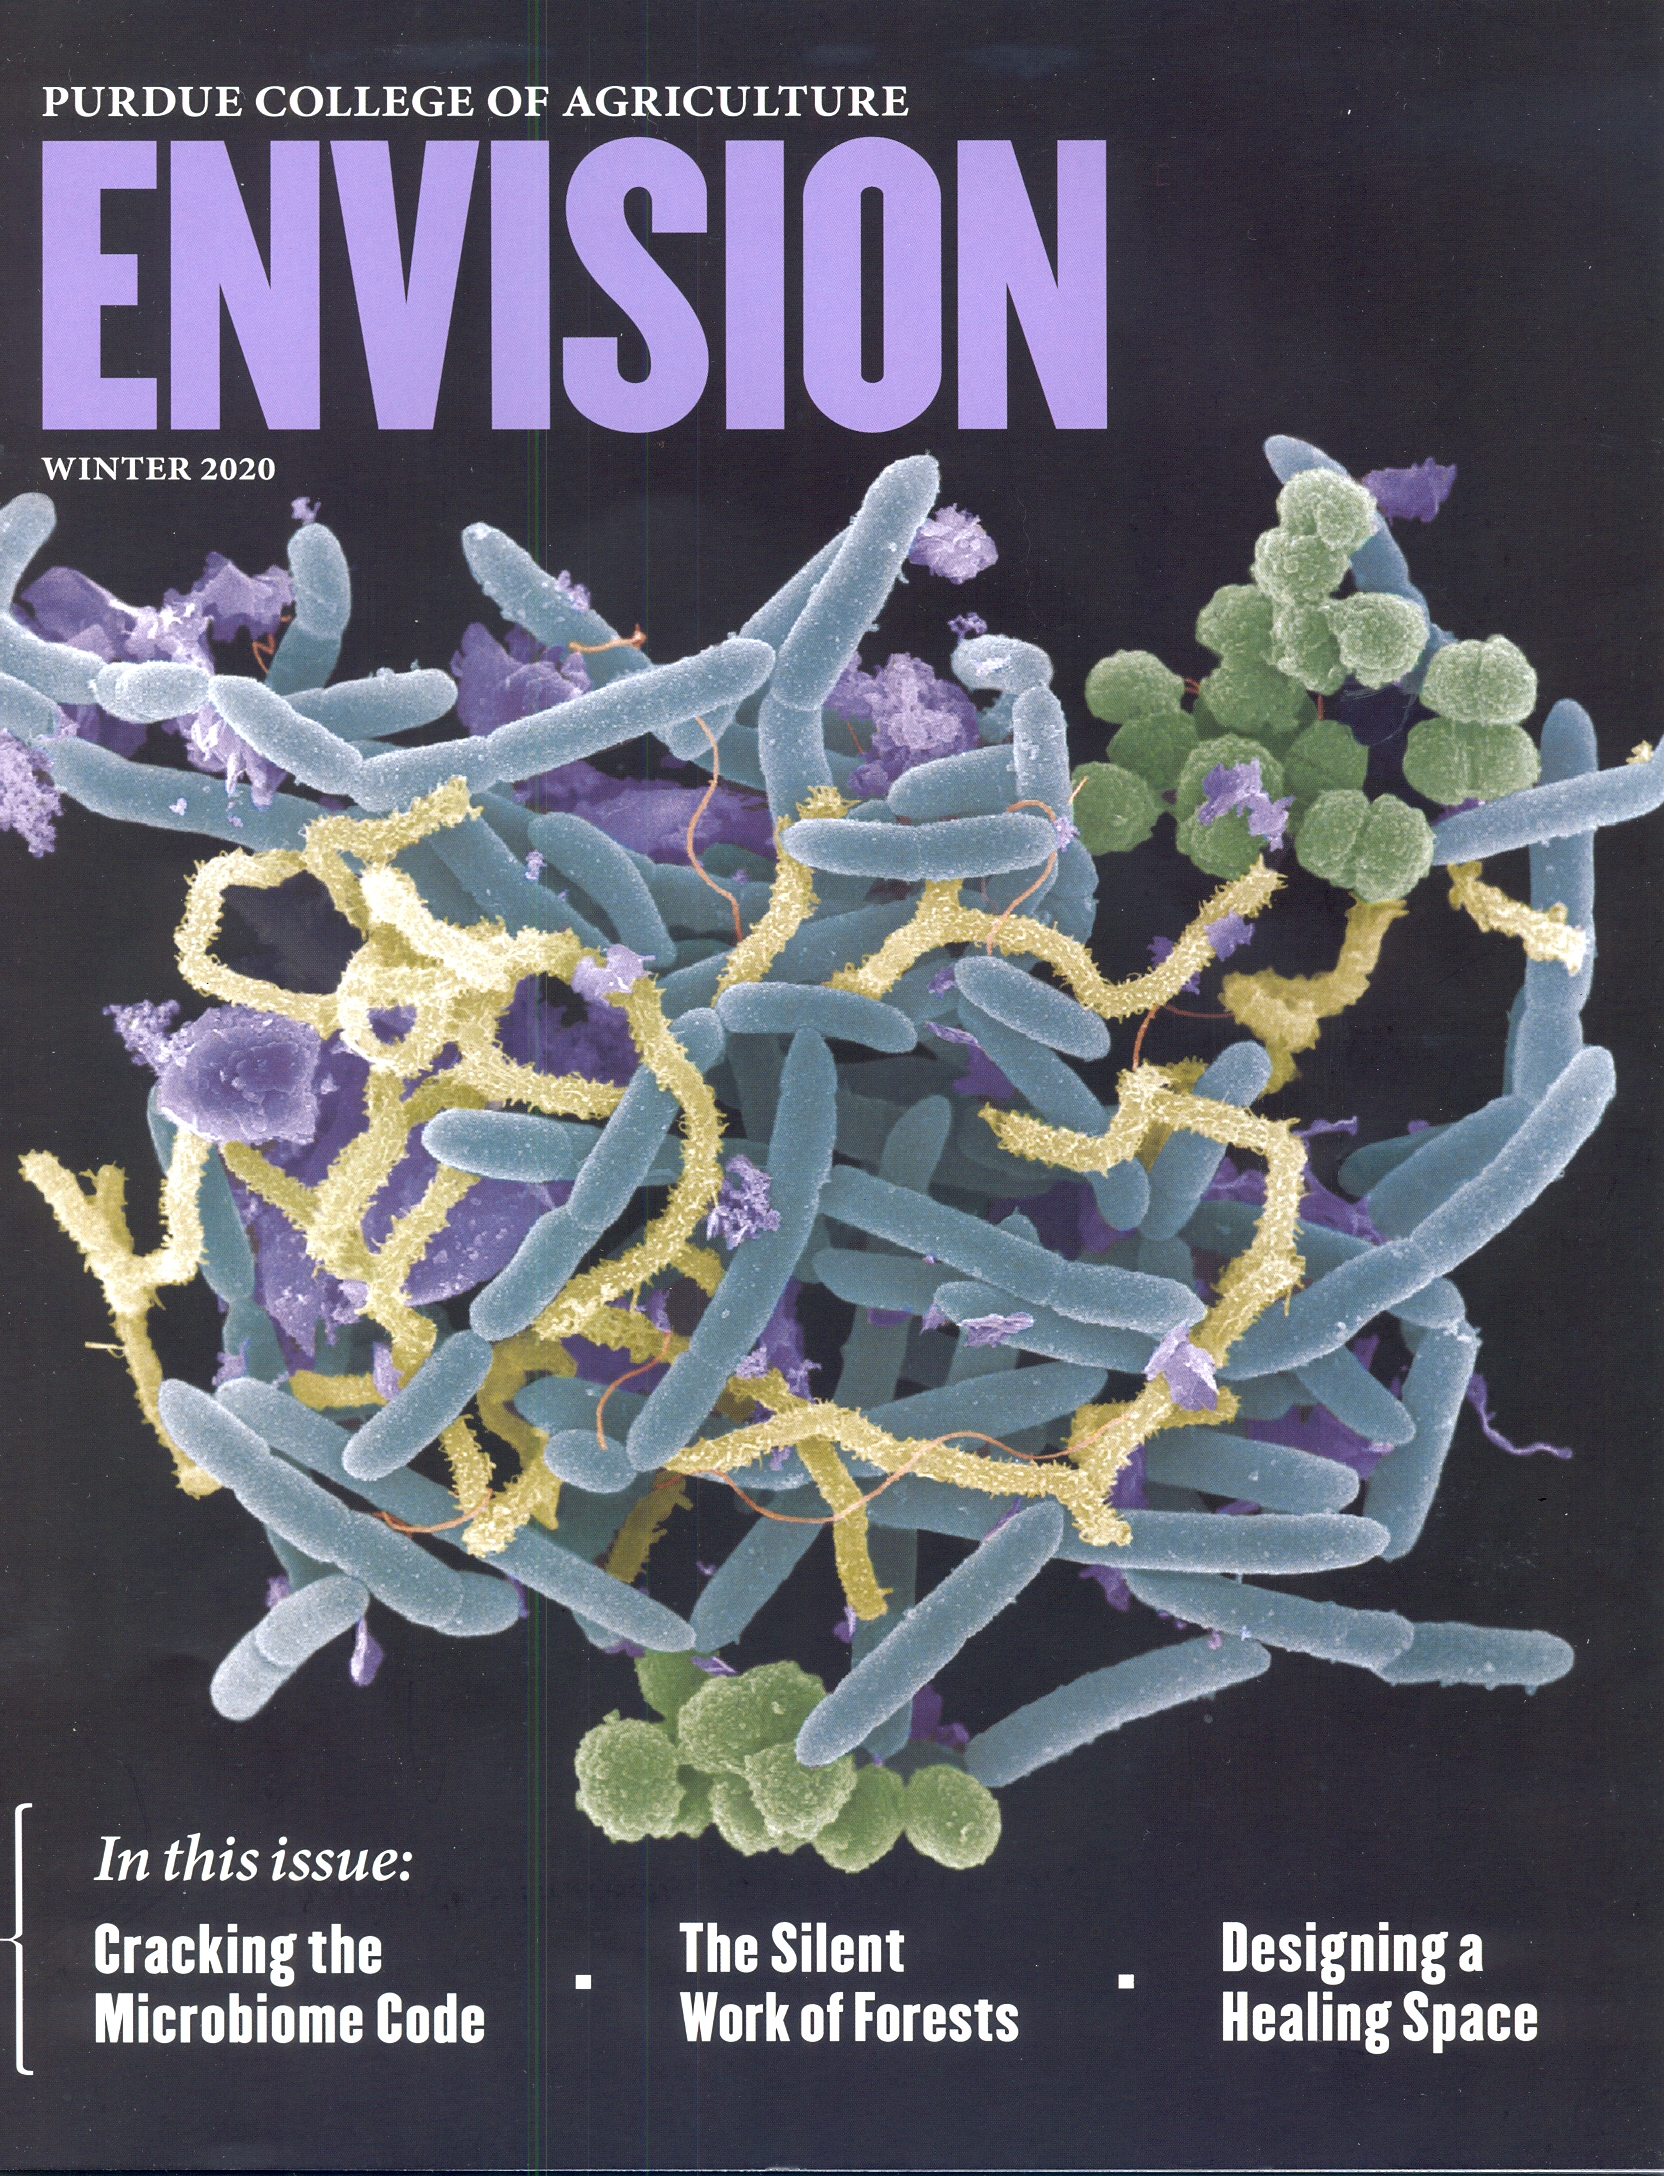 Image of the front cover of Envision